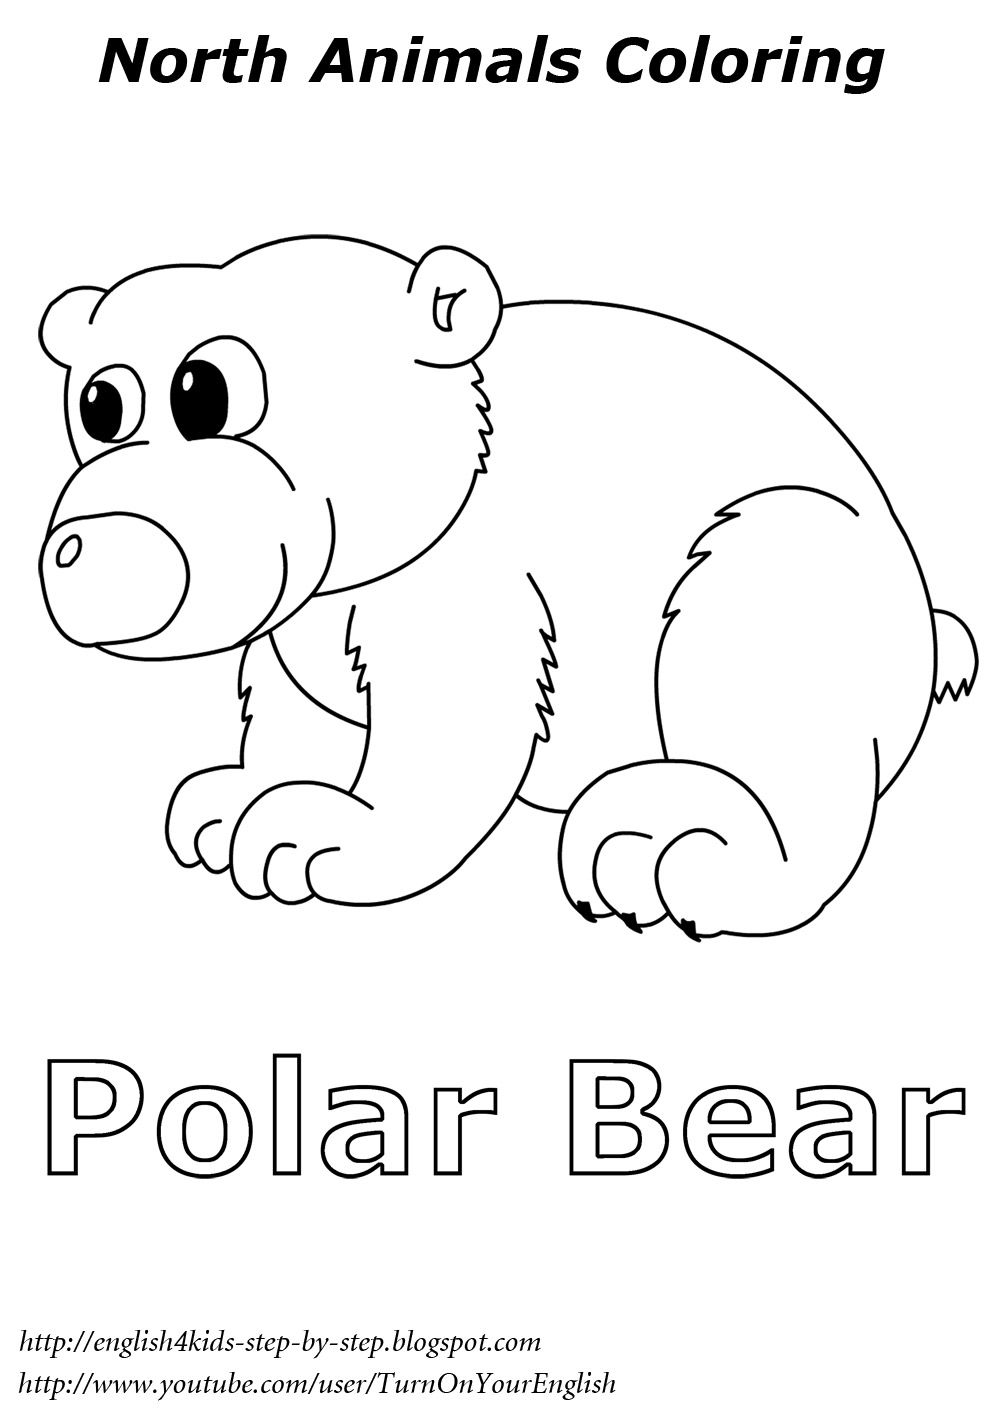 [PDF]Arctic & Antarctic activity book NOAA Education Resources - polar bear coloring pages